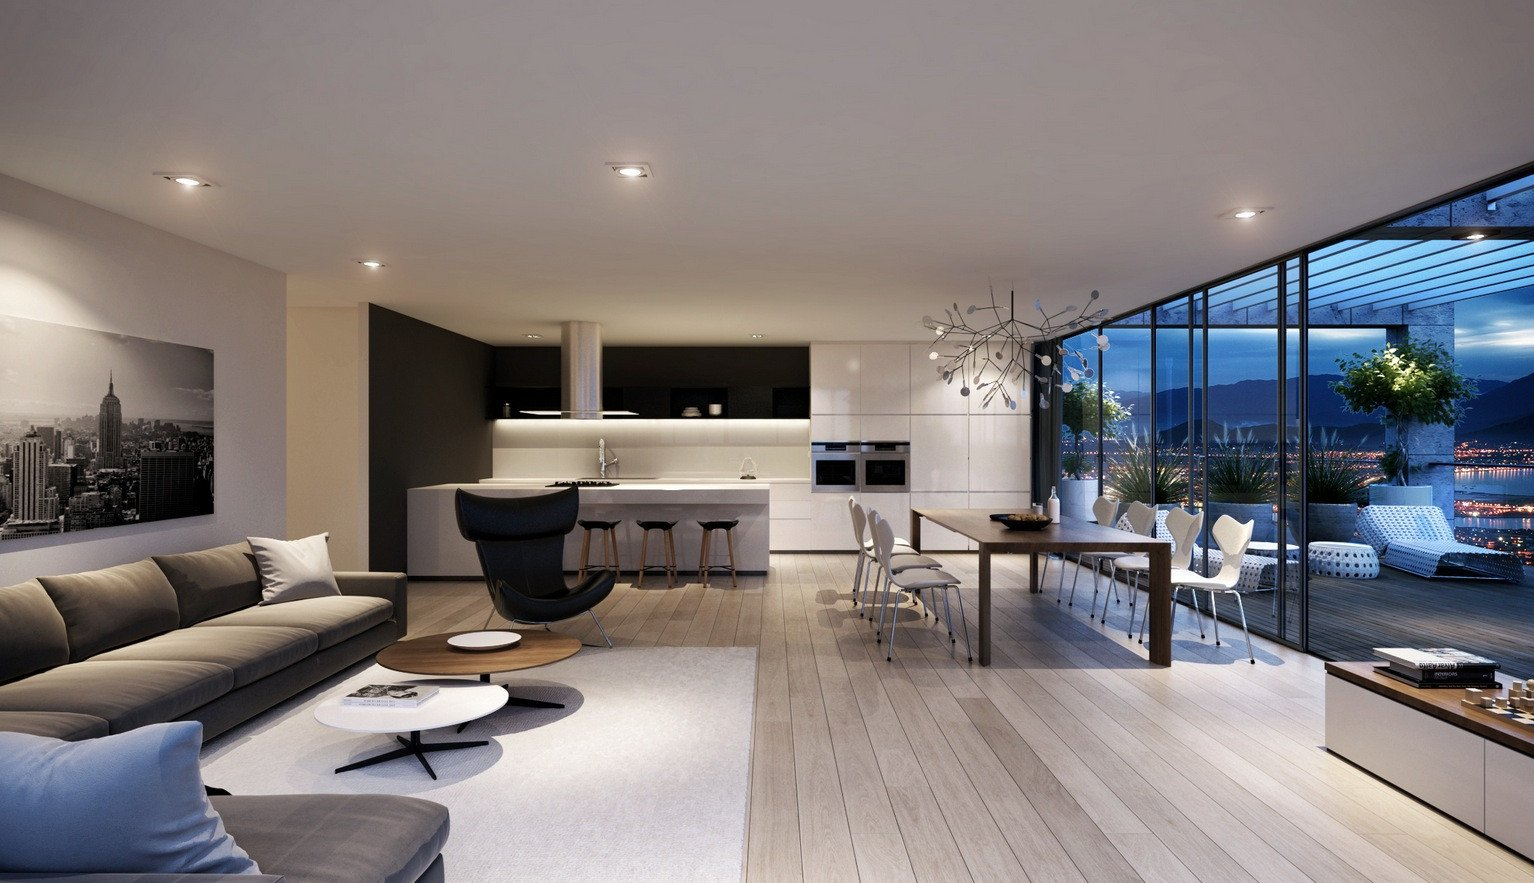 Living Room Ideas Contemporary Lovely 11 Awesome and Trendy Modern Living Room Design Ideas